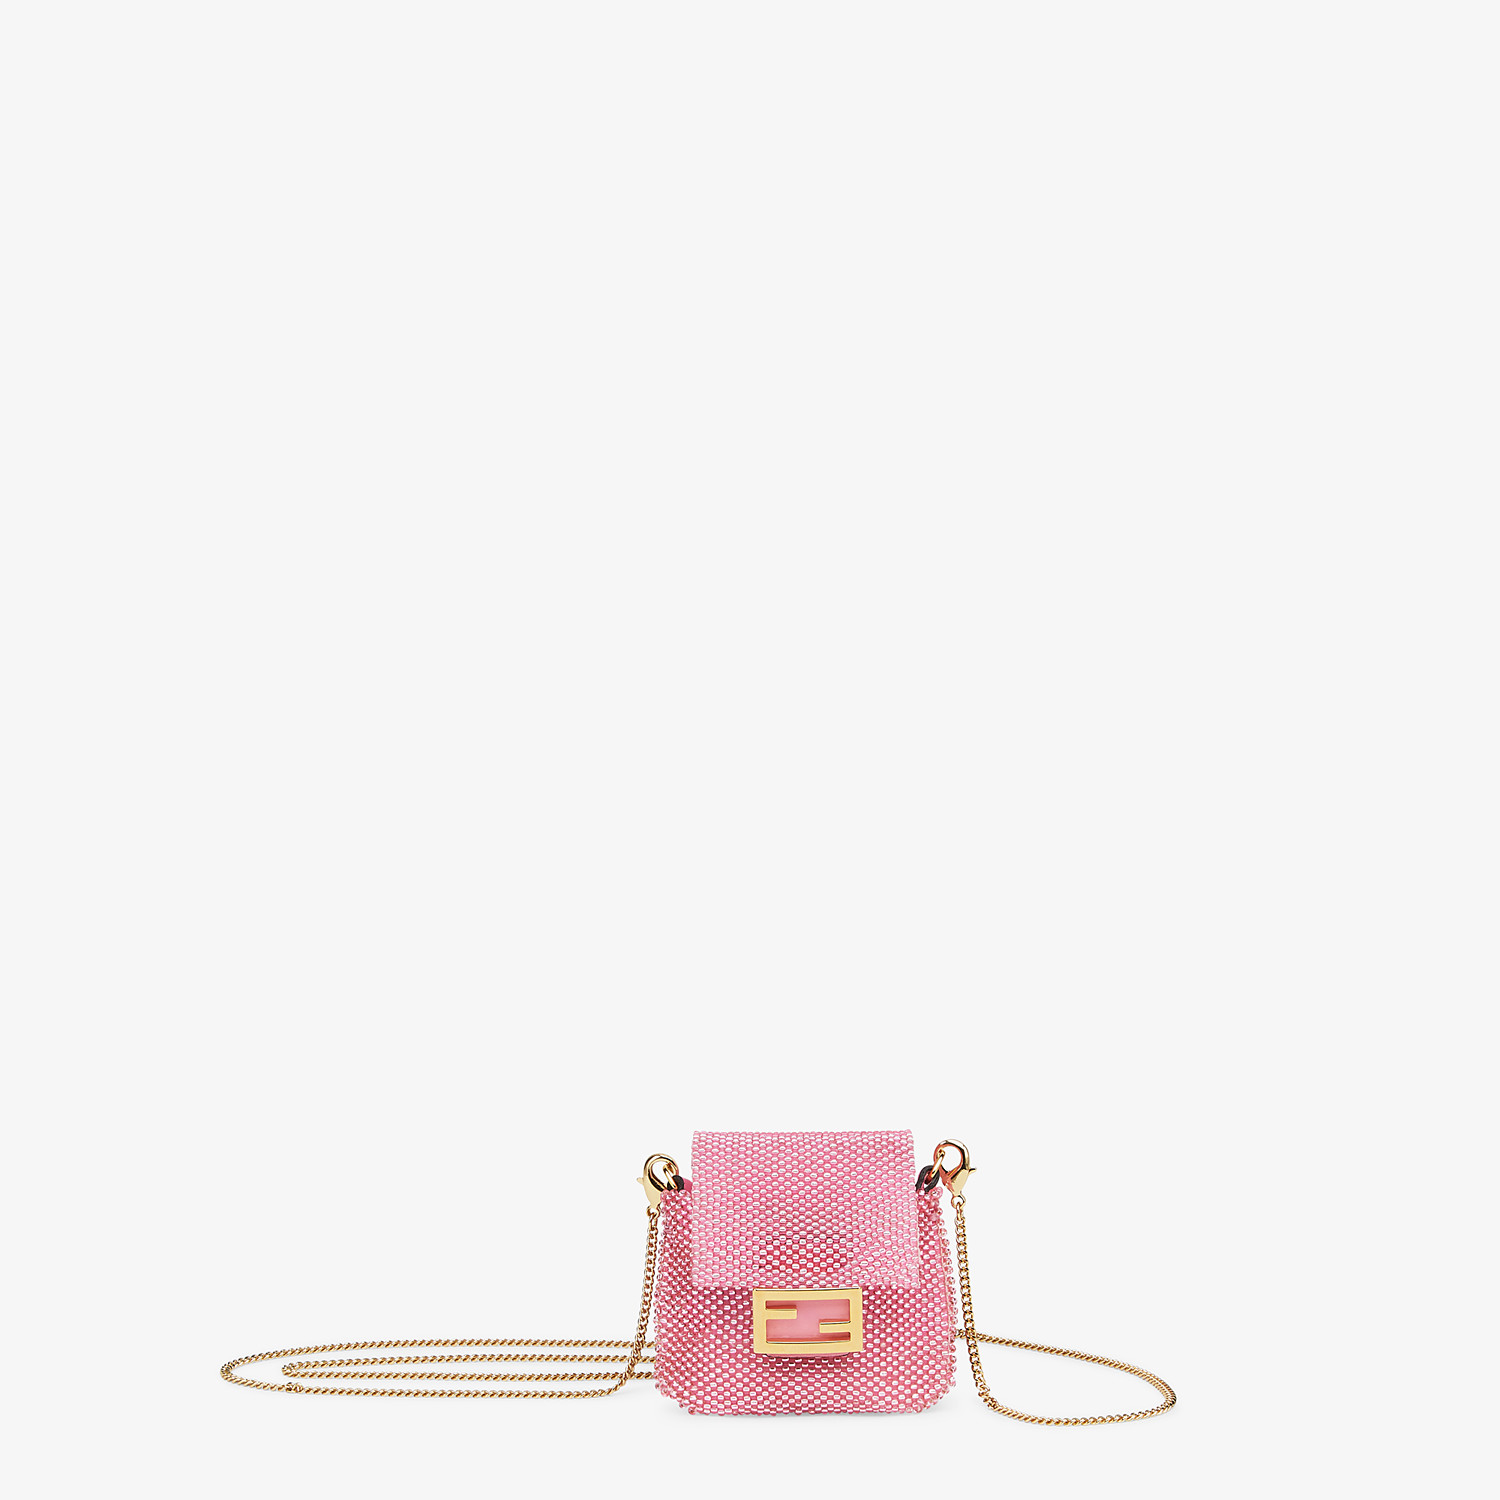 FENDI PICO BAGUETTE CHARM - Charm with pink beads - view 1 detail